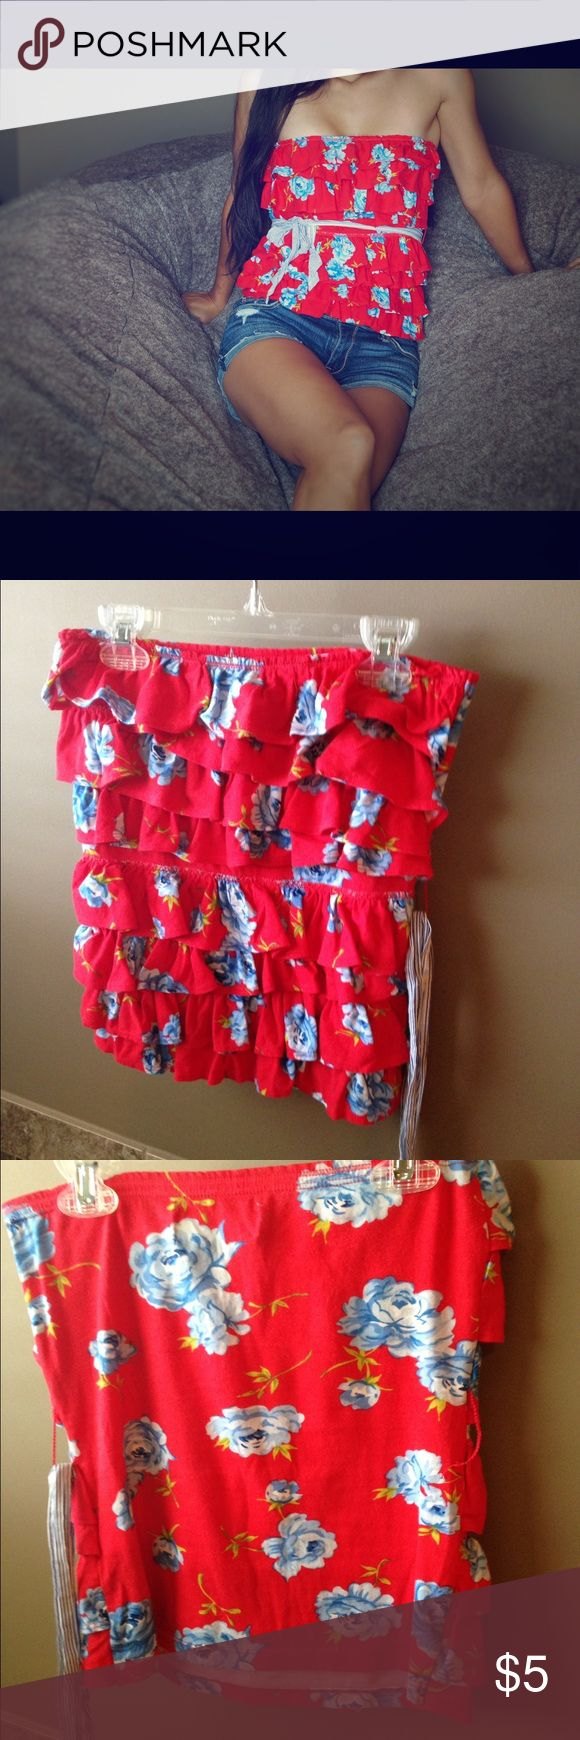 Abercrombie & Fitch strapless floral top Cute red floral strapless top with removable ribbon just under the bust. Flirty frills layer the front. Easily paired to make many cute outfits. Abercrombie & Fitch Tops Blouses